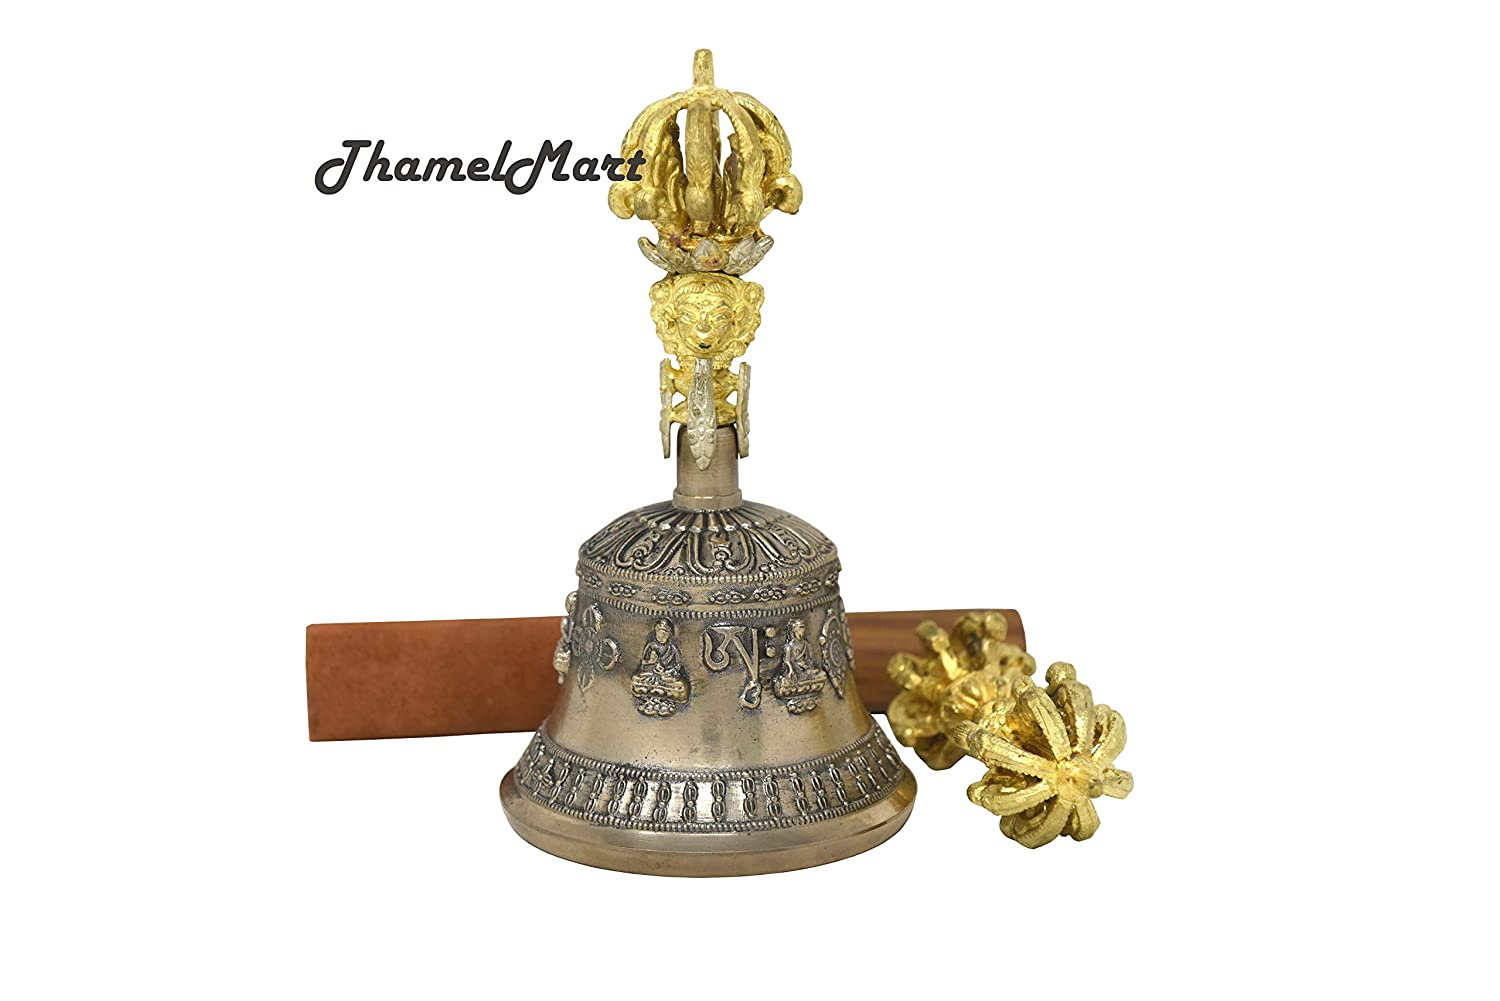 Tibetan Buddhist Meditation Bell and Dorje Set - Bell of Enlightenment from Nepal 7 Inches thamelmart tha-4286